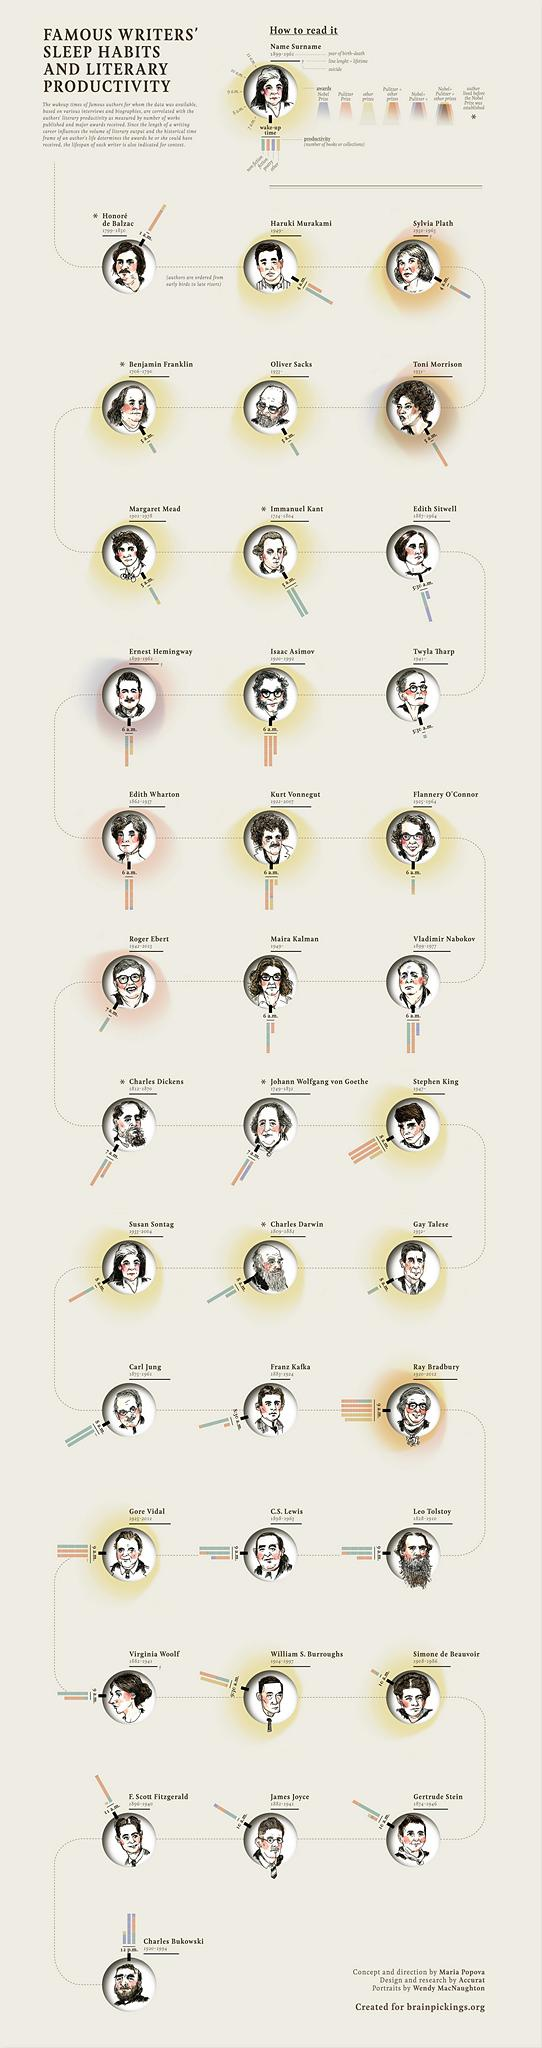 Literary-productivity-of-famous-writers-infographic